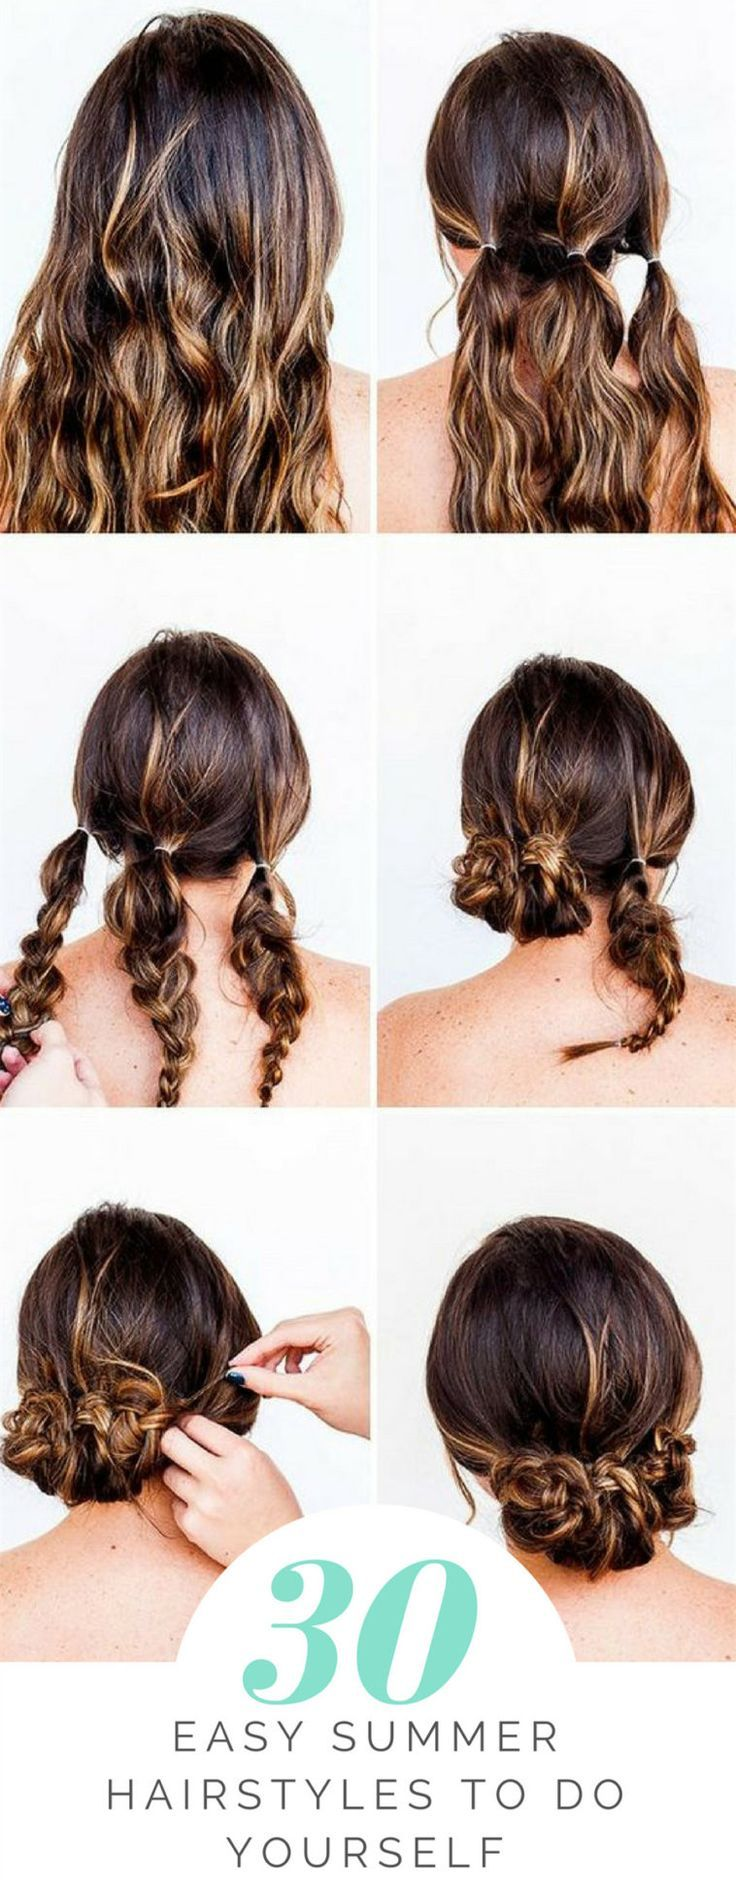 30 Easy Summer Hairstyles To Do Yourself Hairstyles Hairs Hair Styles Long Hair Styles Quick Braids